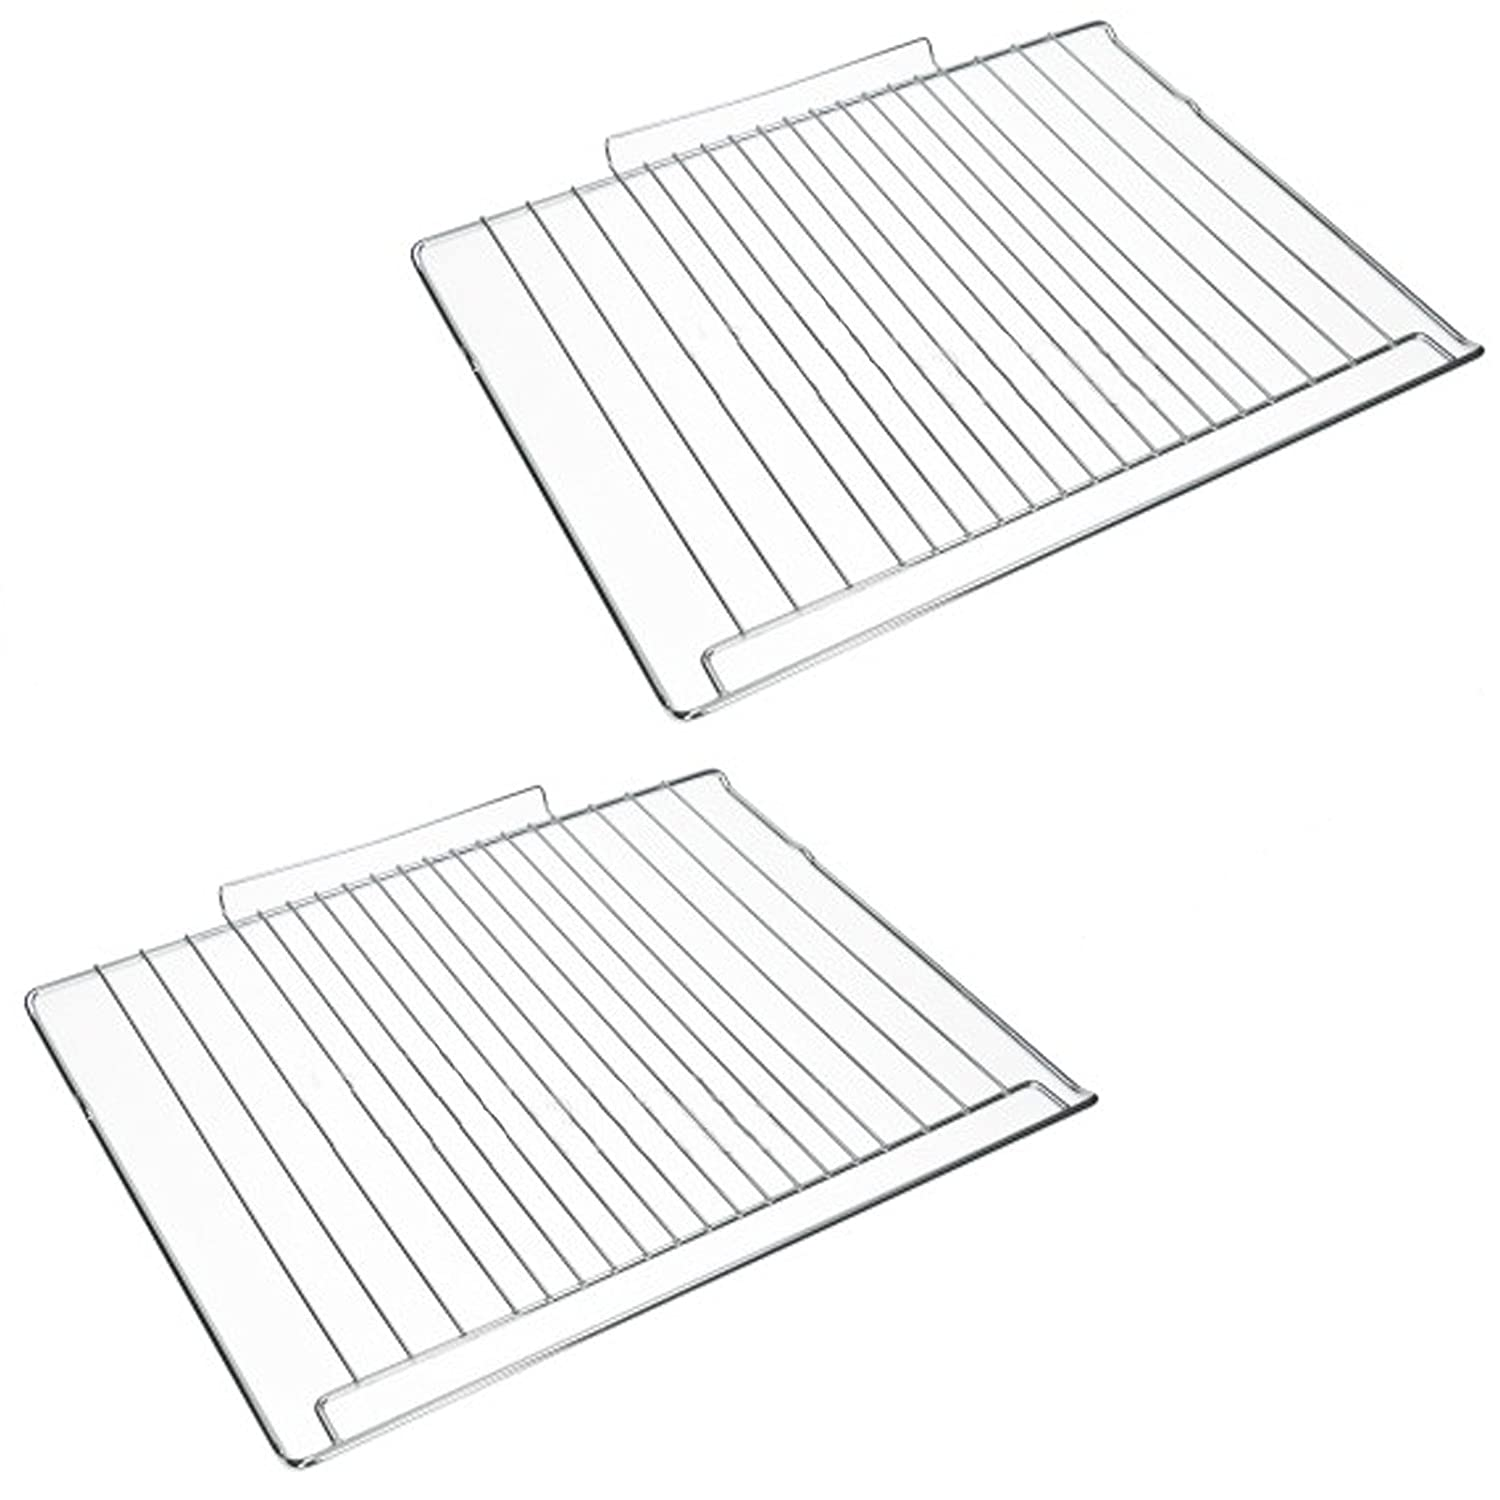 SPARES2GO Shelf Rack for Hotpoint Oven Cooker Grill (477mm x 363mm) Pack of 2